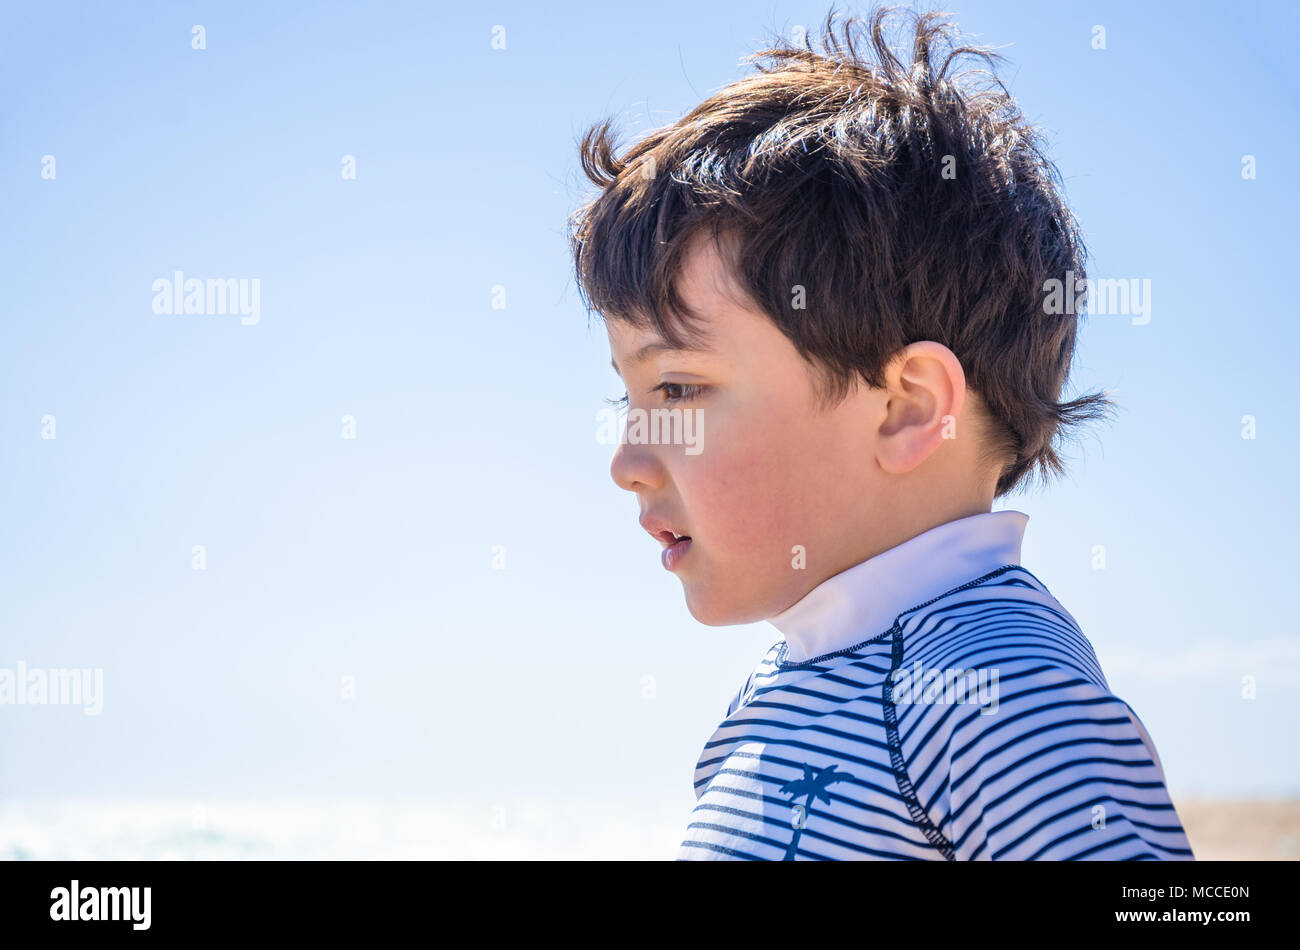 a-portrait-of-a-young-boy-taken-outside-against-a-clear-blue-sky-while-on-holiday-MCCE0N.jpg